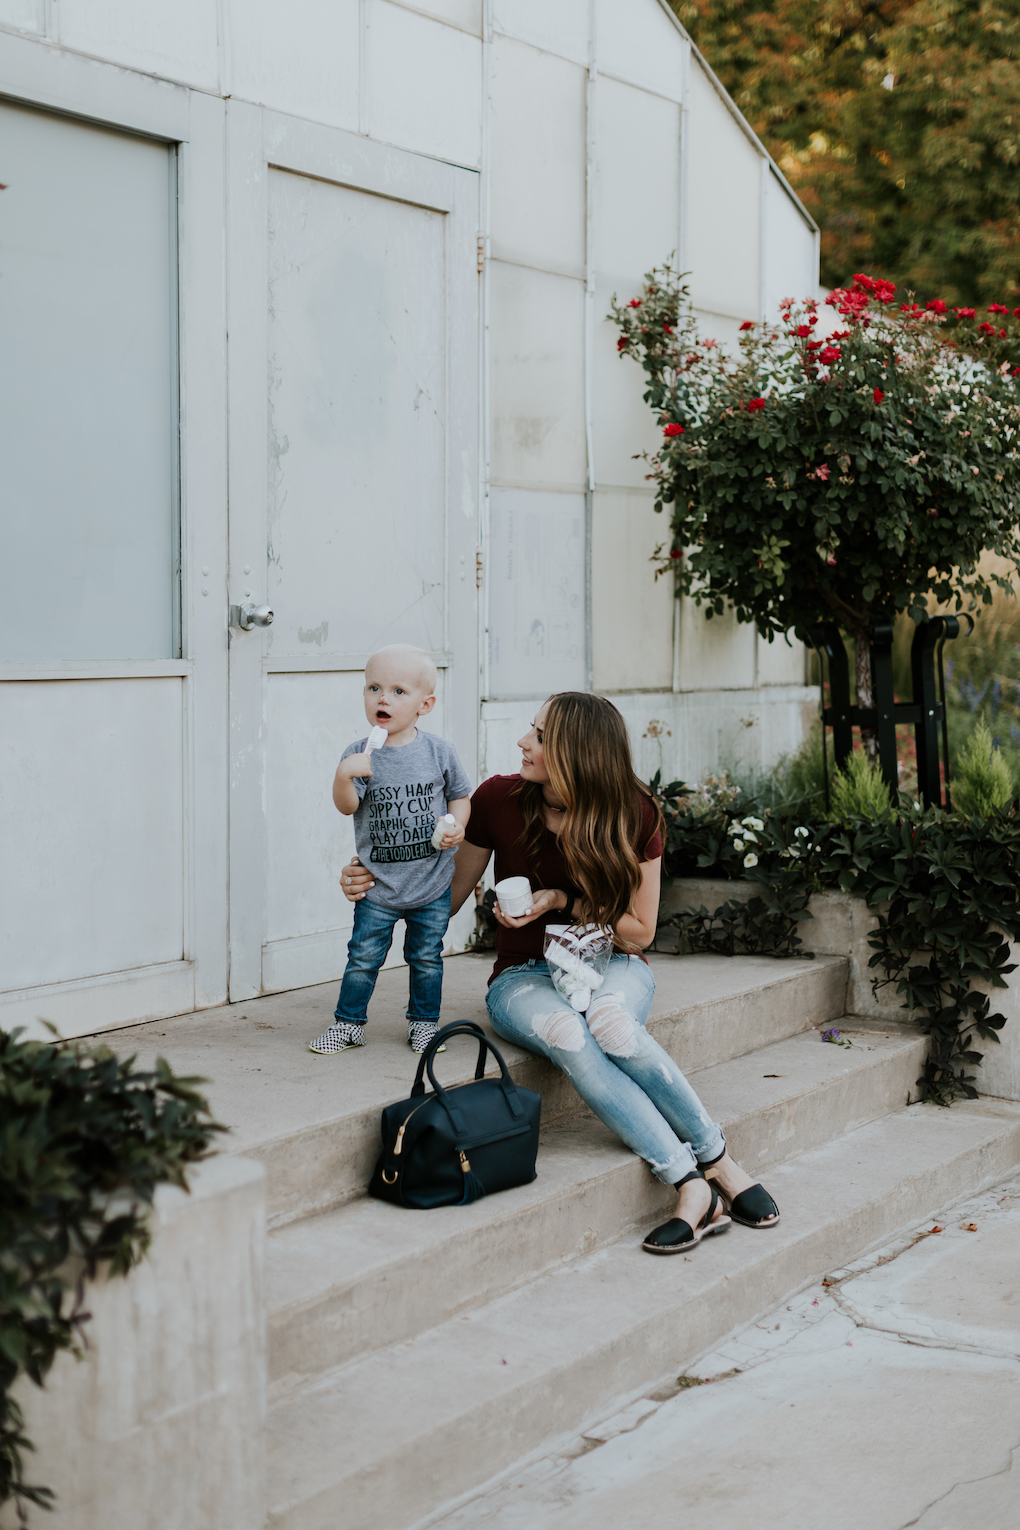 mom and little boy sitting on the stairs with baby pibu products little boy in graphic tee and jeans mom in distressed denim a maroon top and a navy handbag